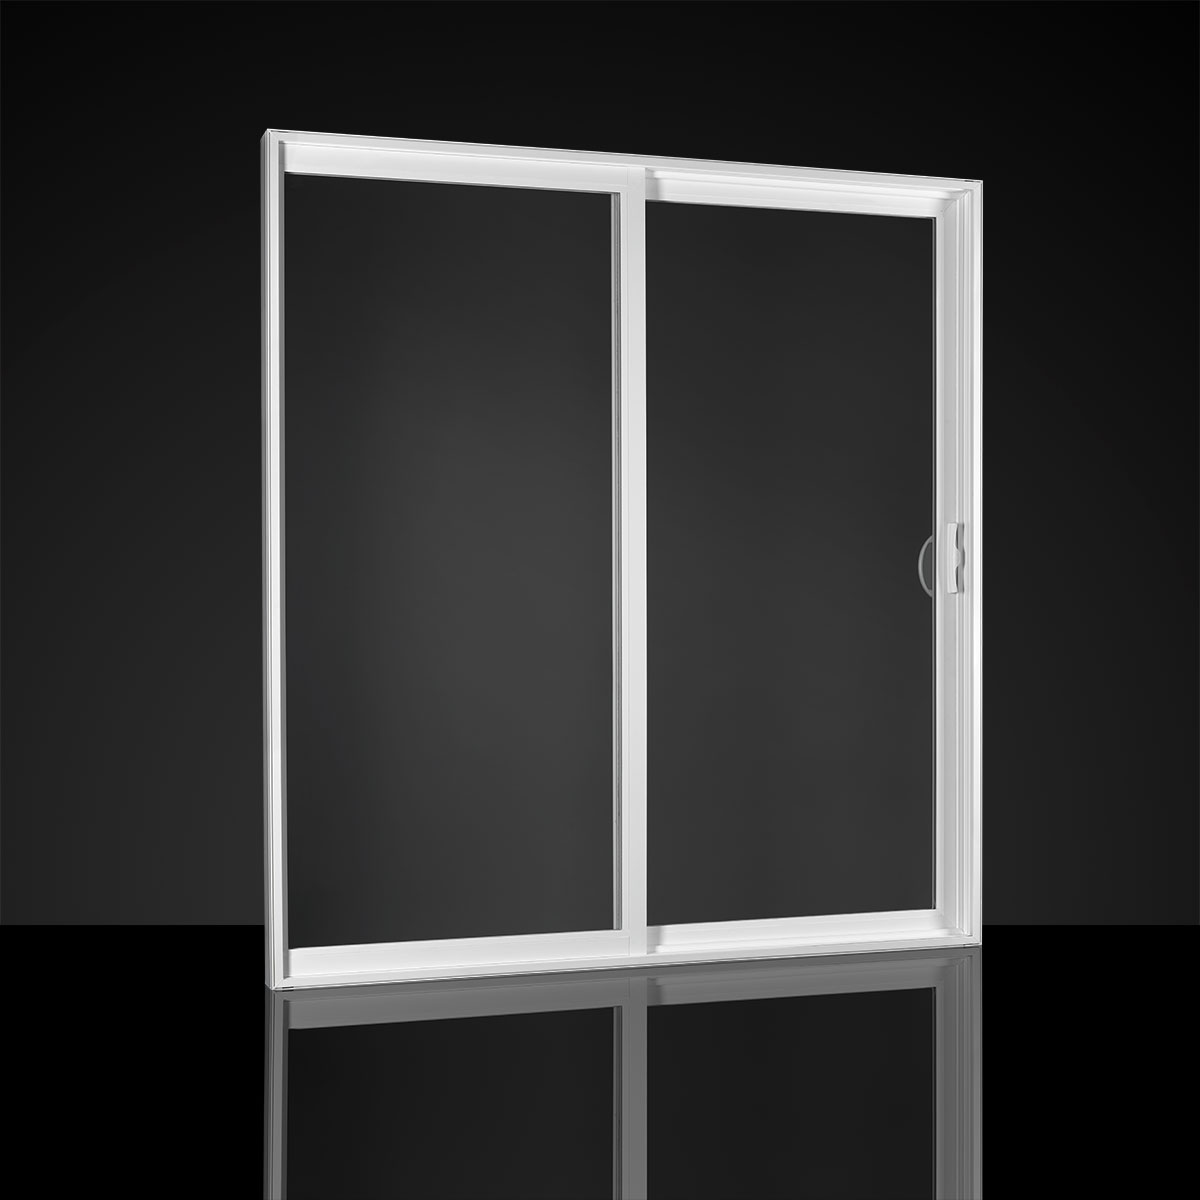 Sliding Glass Door Product Information Mi Windows And Doors